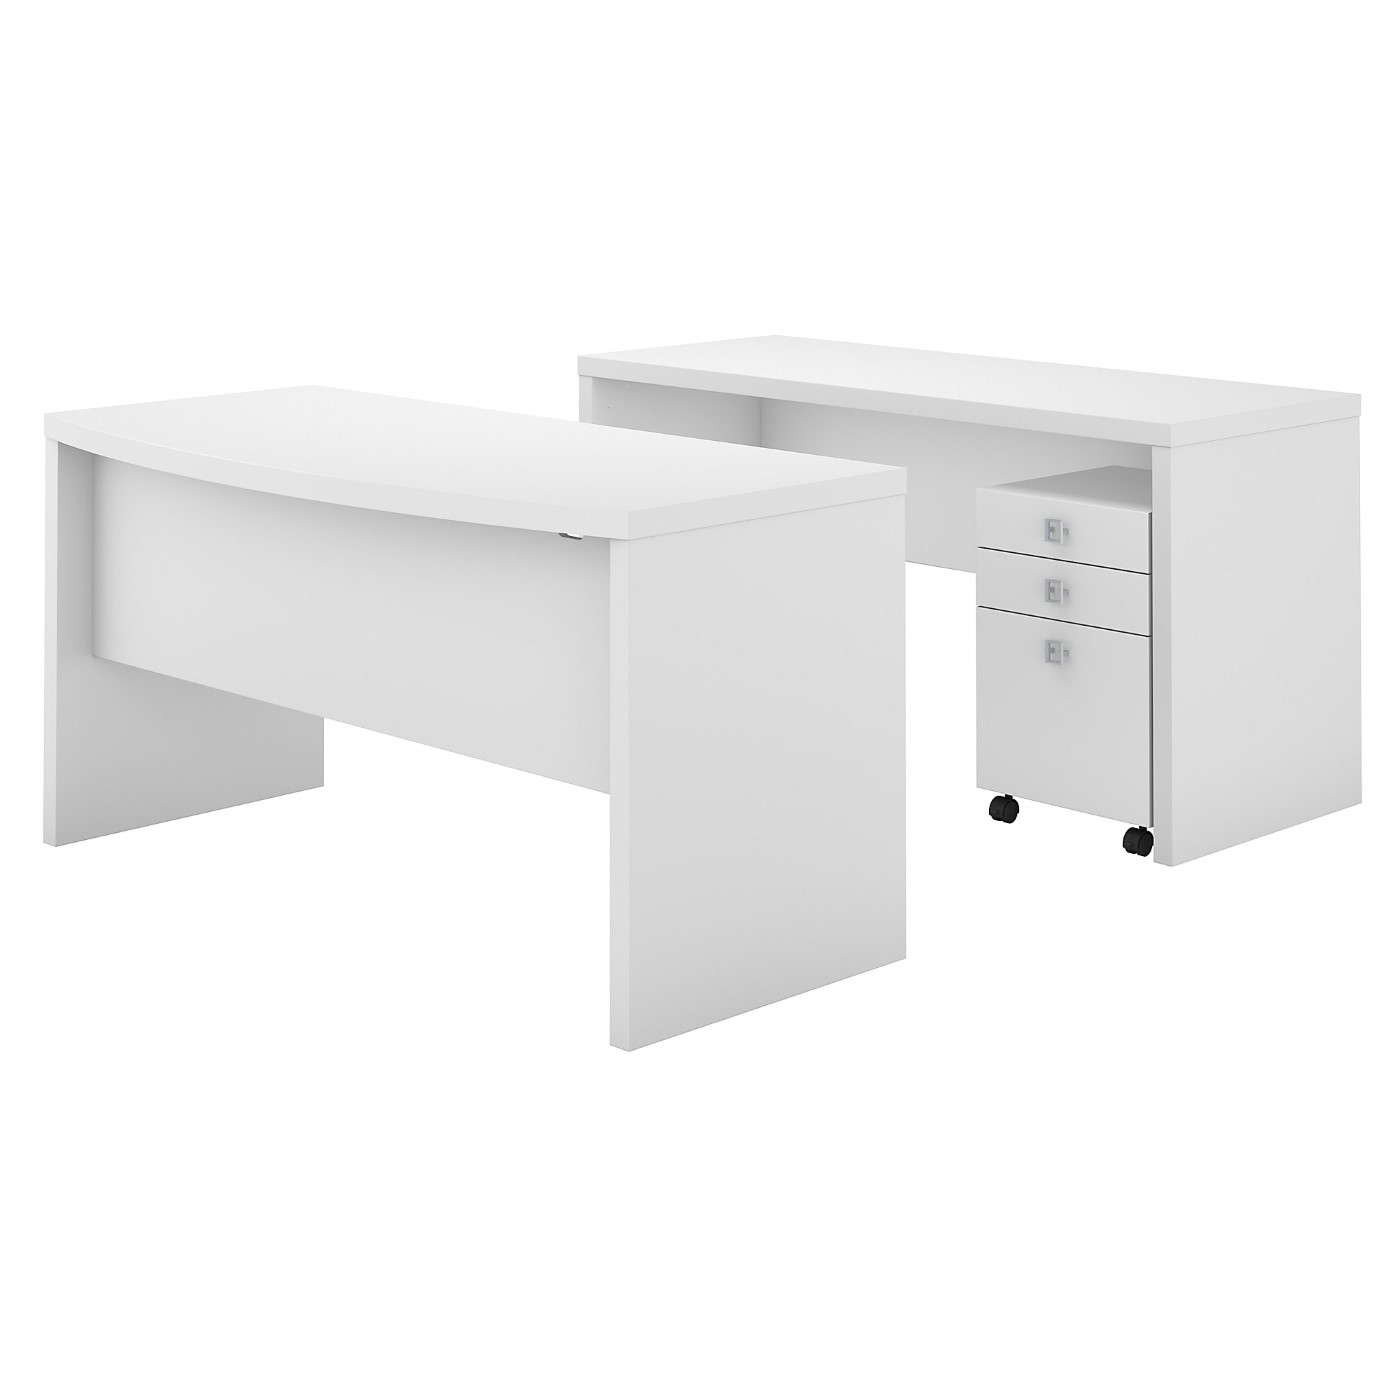 OFFICE BY KATHY IRELAND� ECHO BOW FRONT DESK AND CREDENZA WITH MOBILE FILE CABINET. FREE SHIPPING